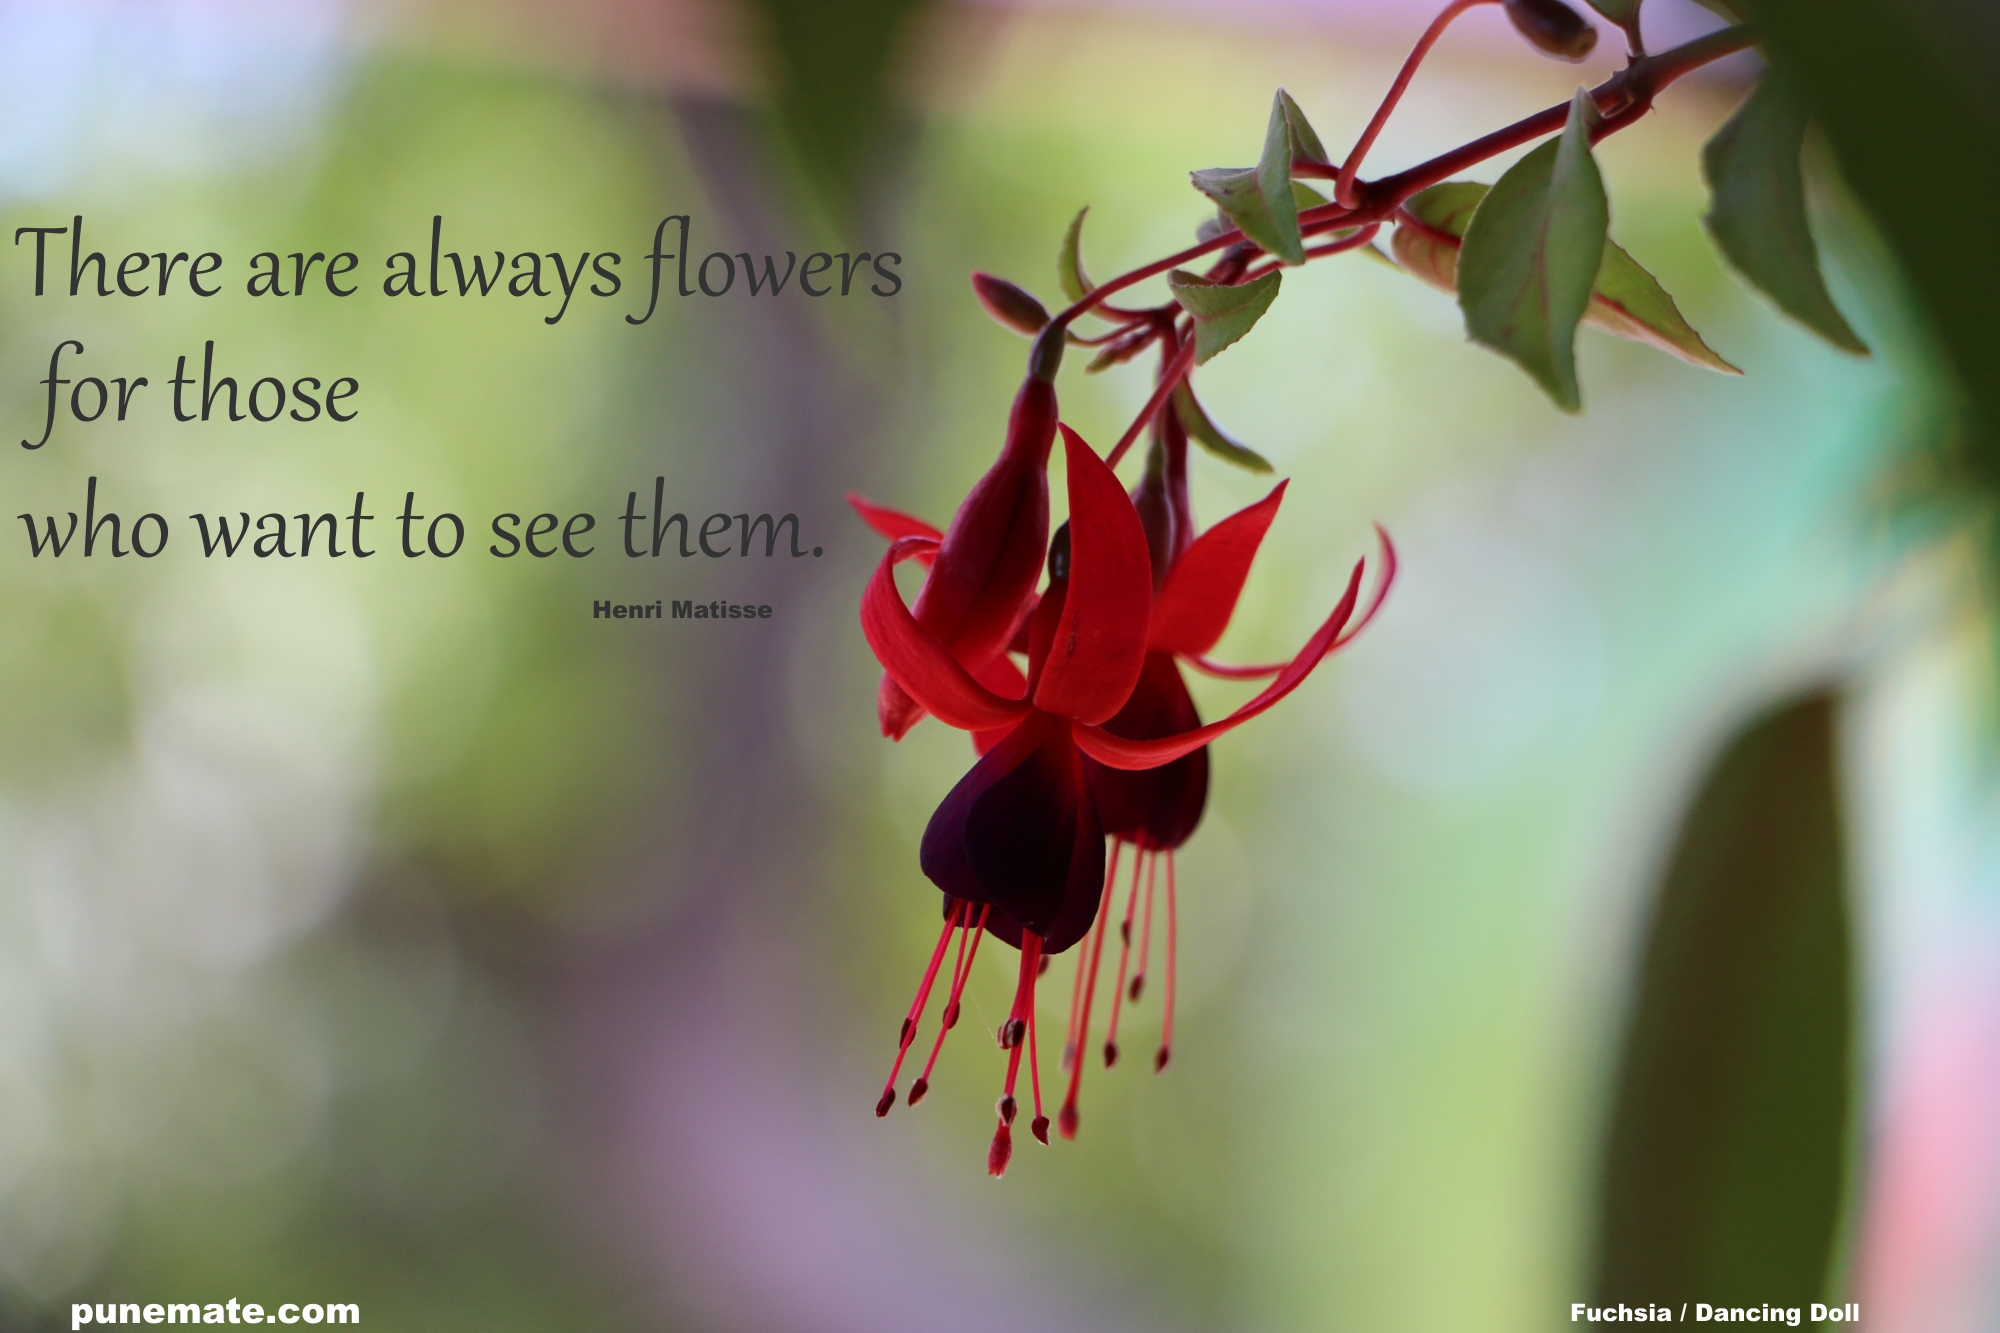 Plants and Flowers of India and Pune Fuchsia or Dancing Doll | Punemate